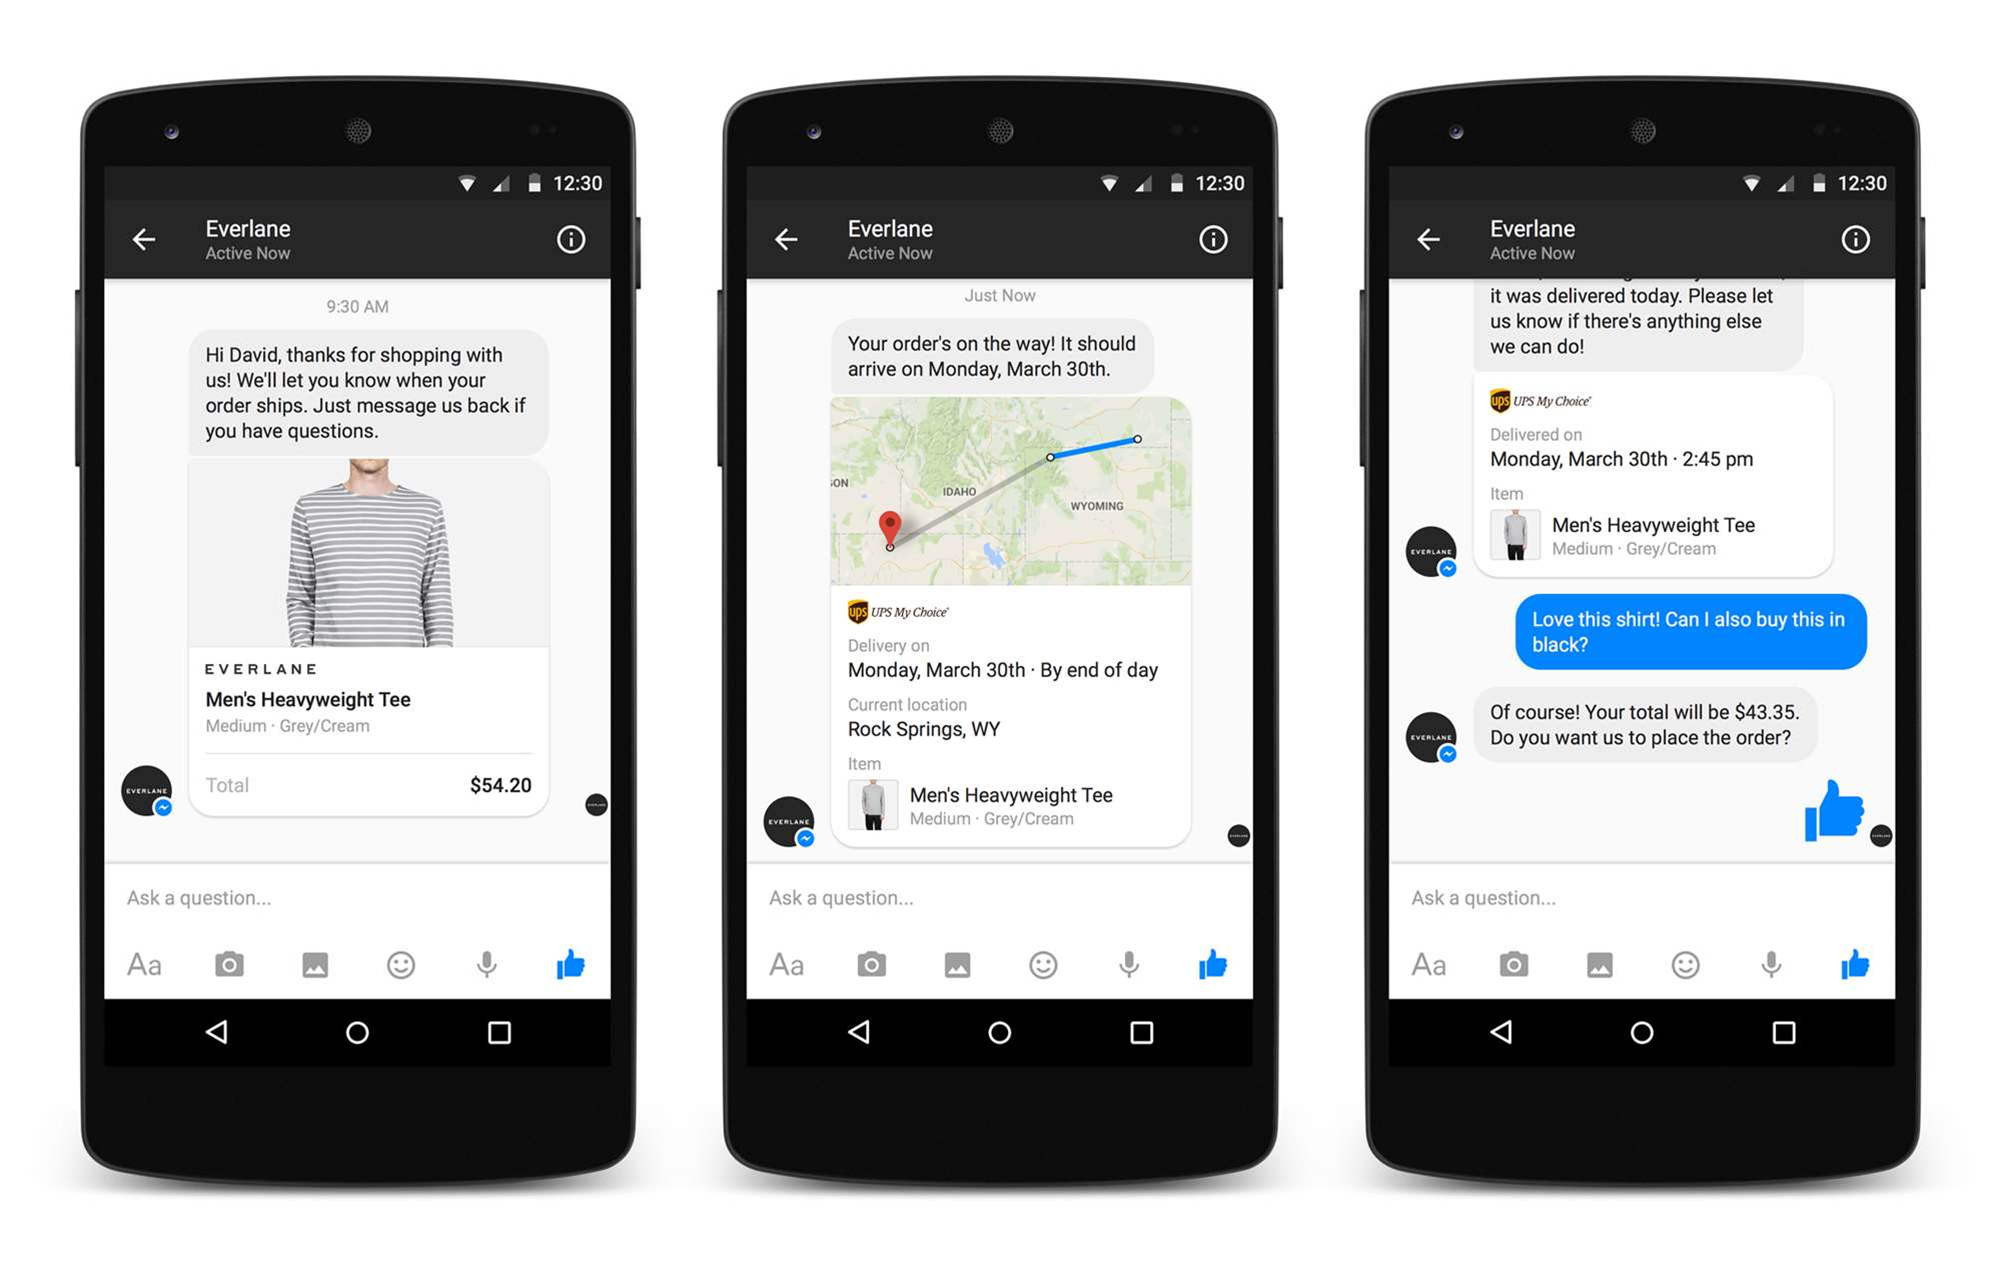 Facebook offers Messenger to businesses